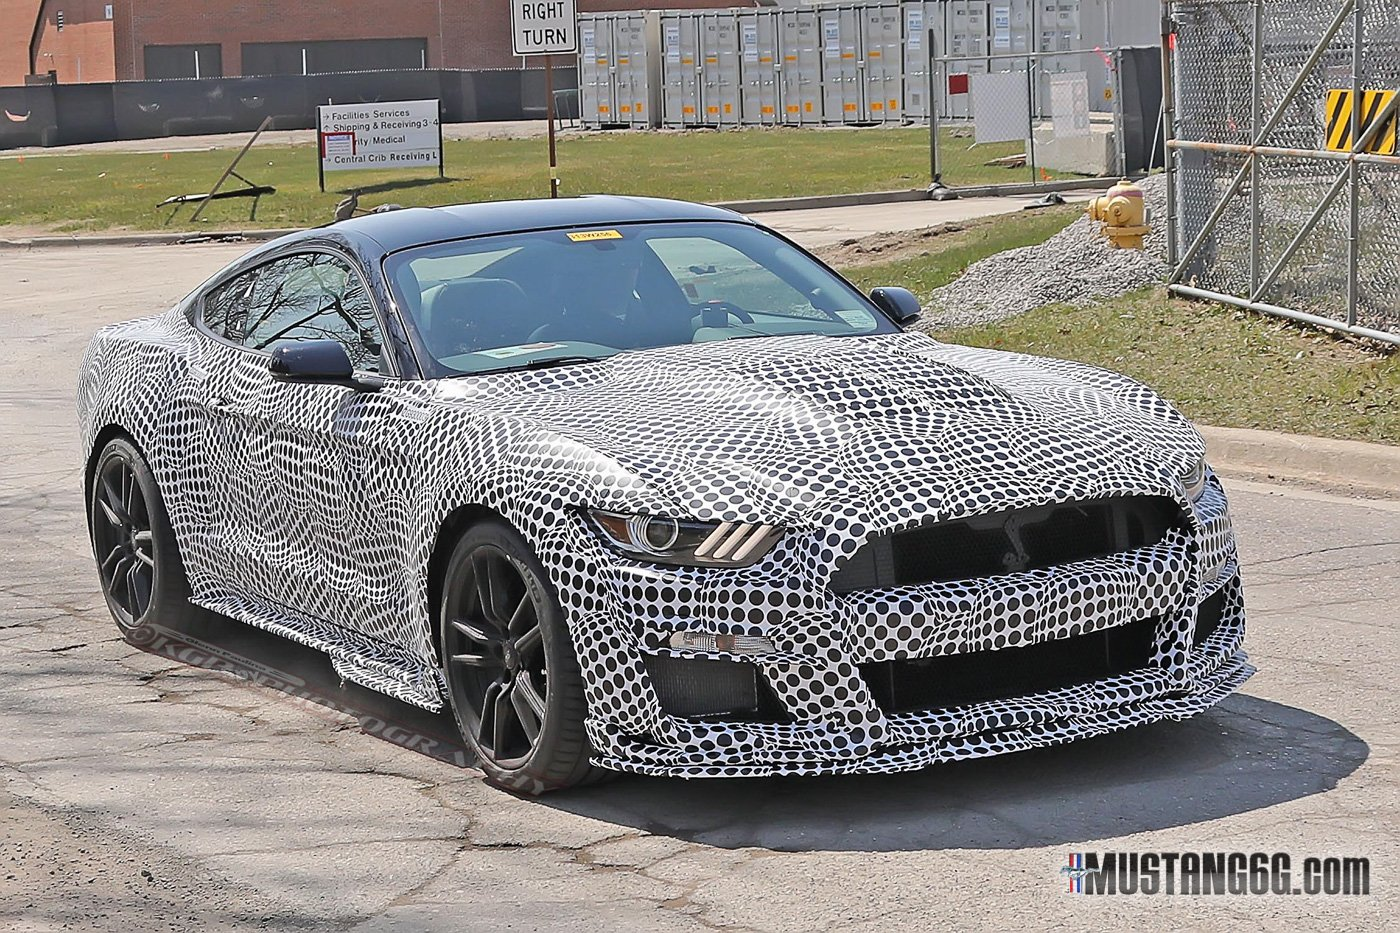 2020 Shelby Gt500 Takes Its Bra Off In Public For The